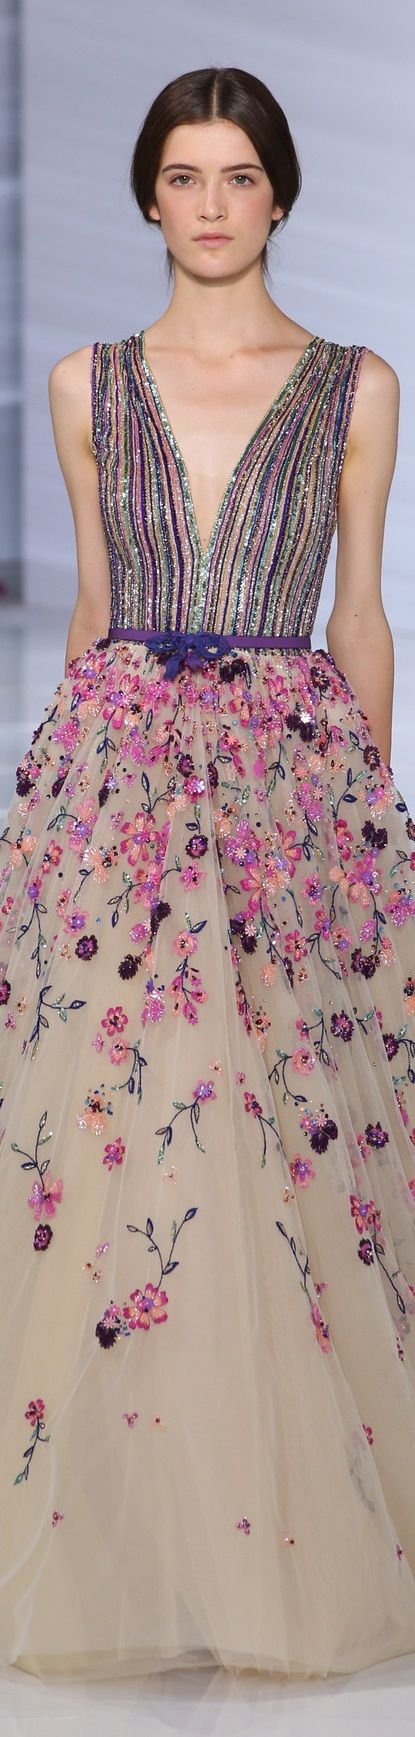 //Georges Hobeika Fall 2015 couture #fashion #floral #couture